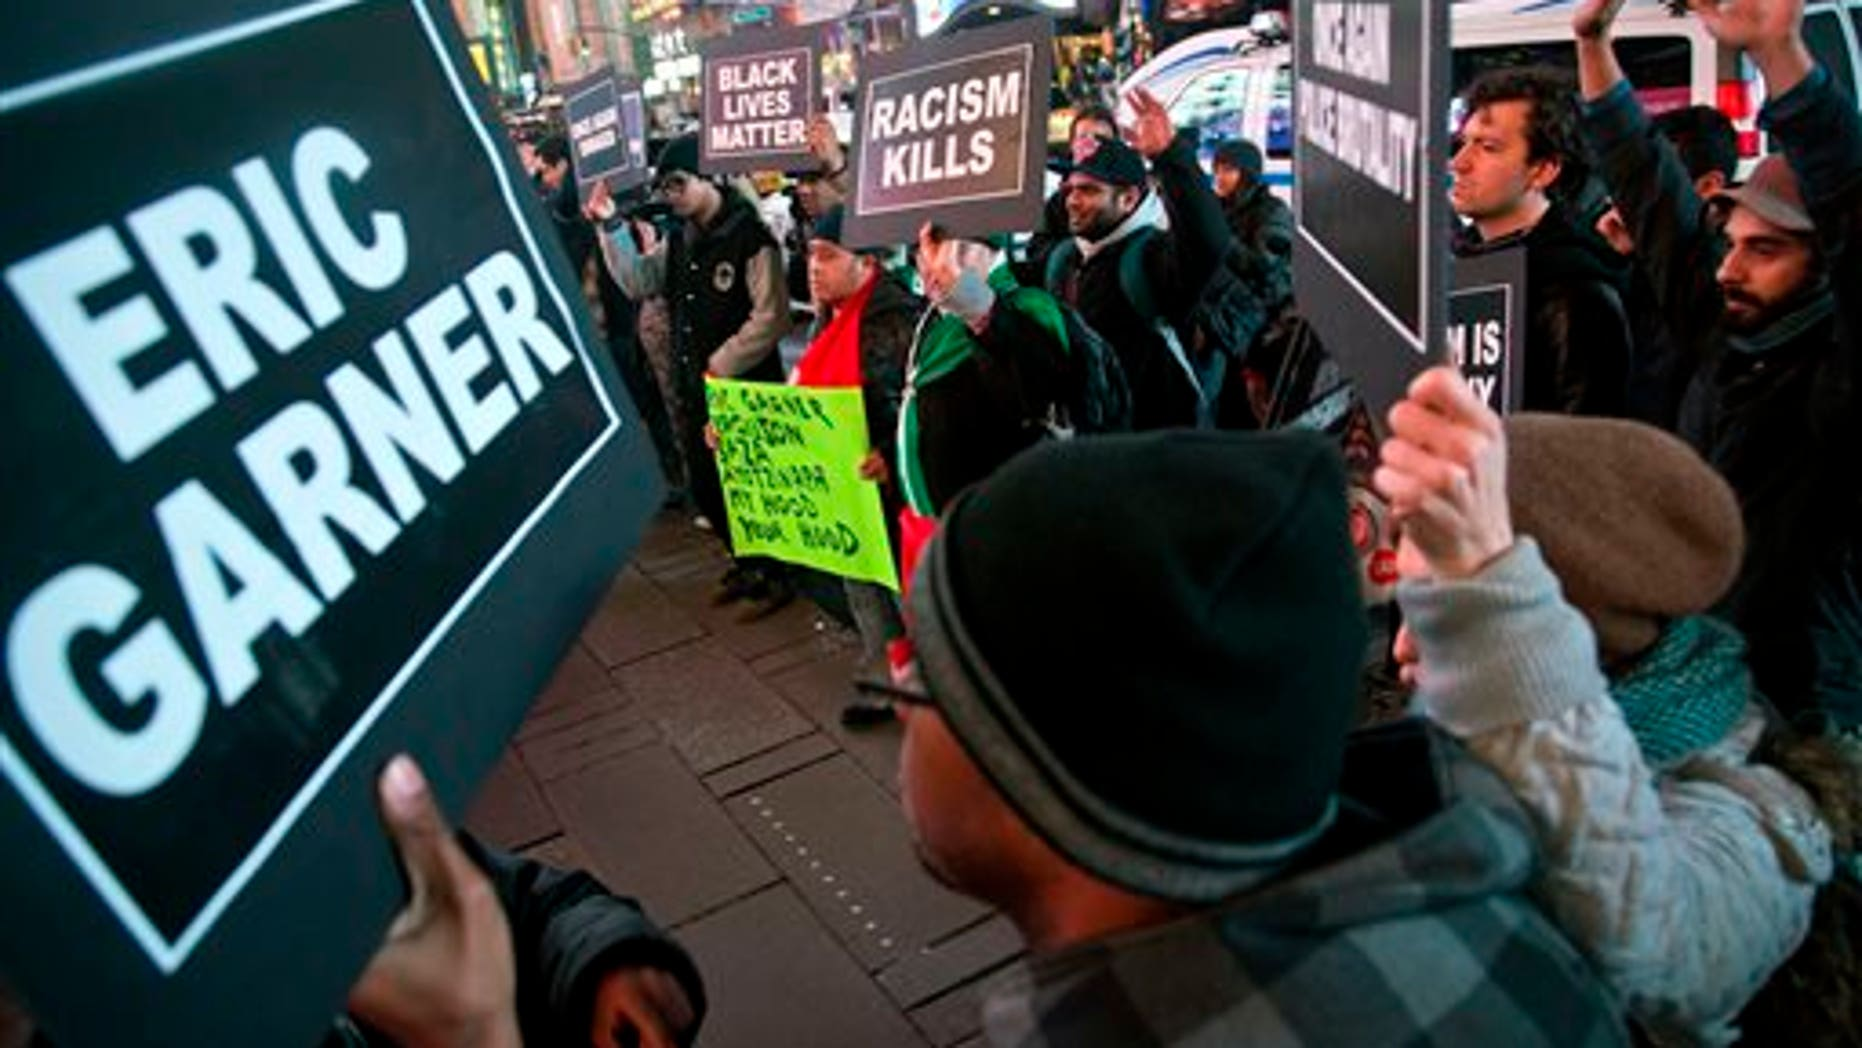 Protesters in Times Square on Dec. 3, 2014, in New York.